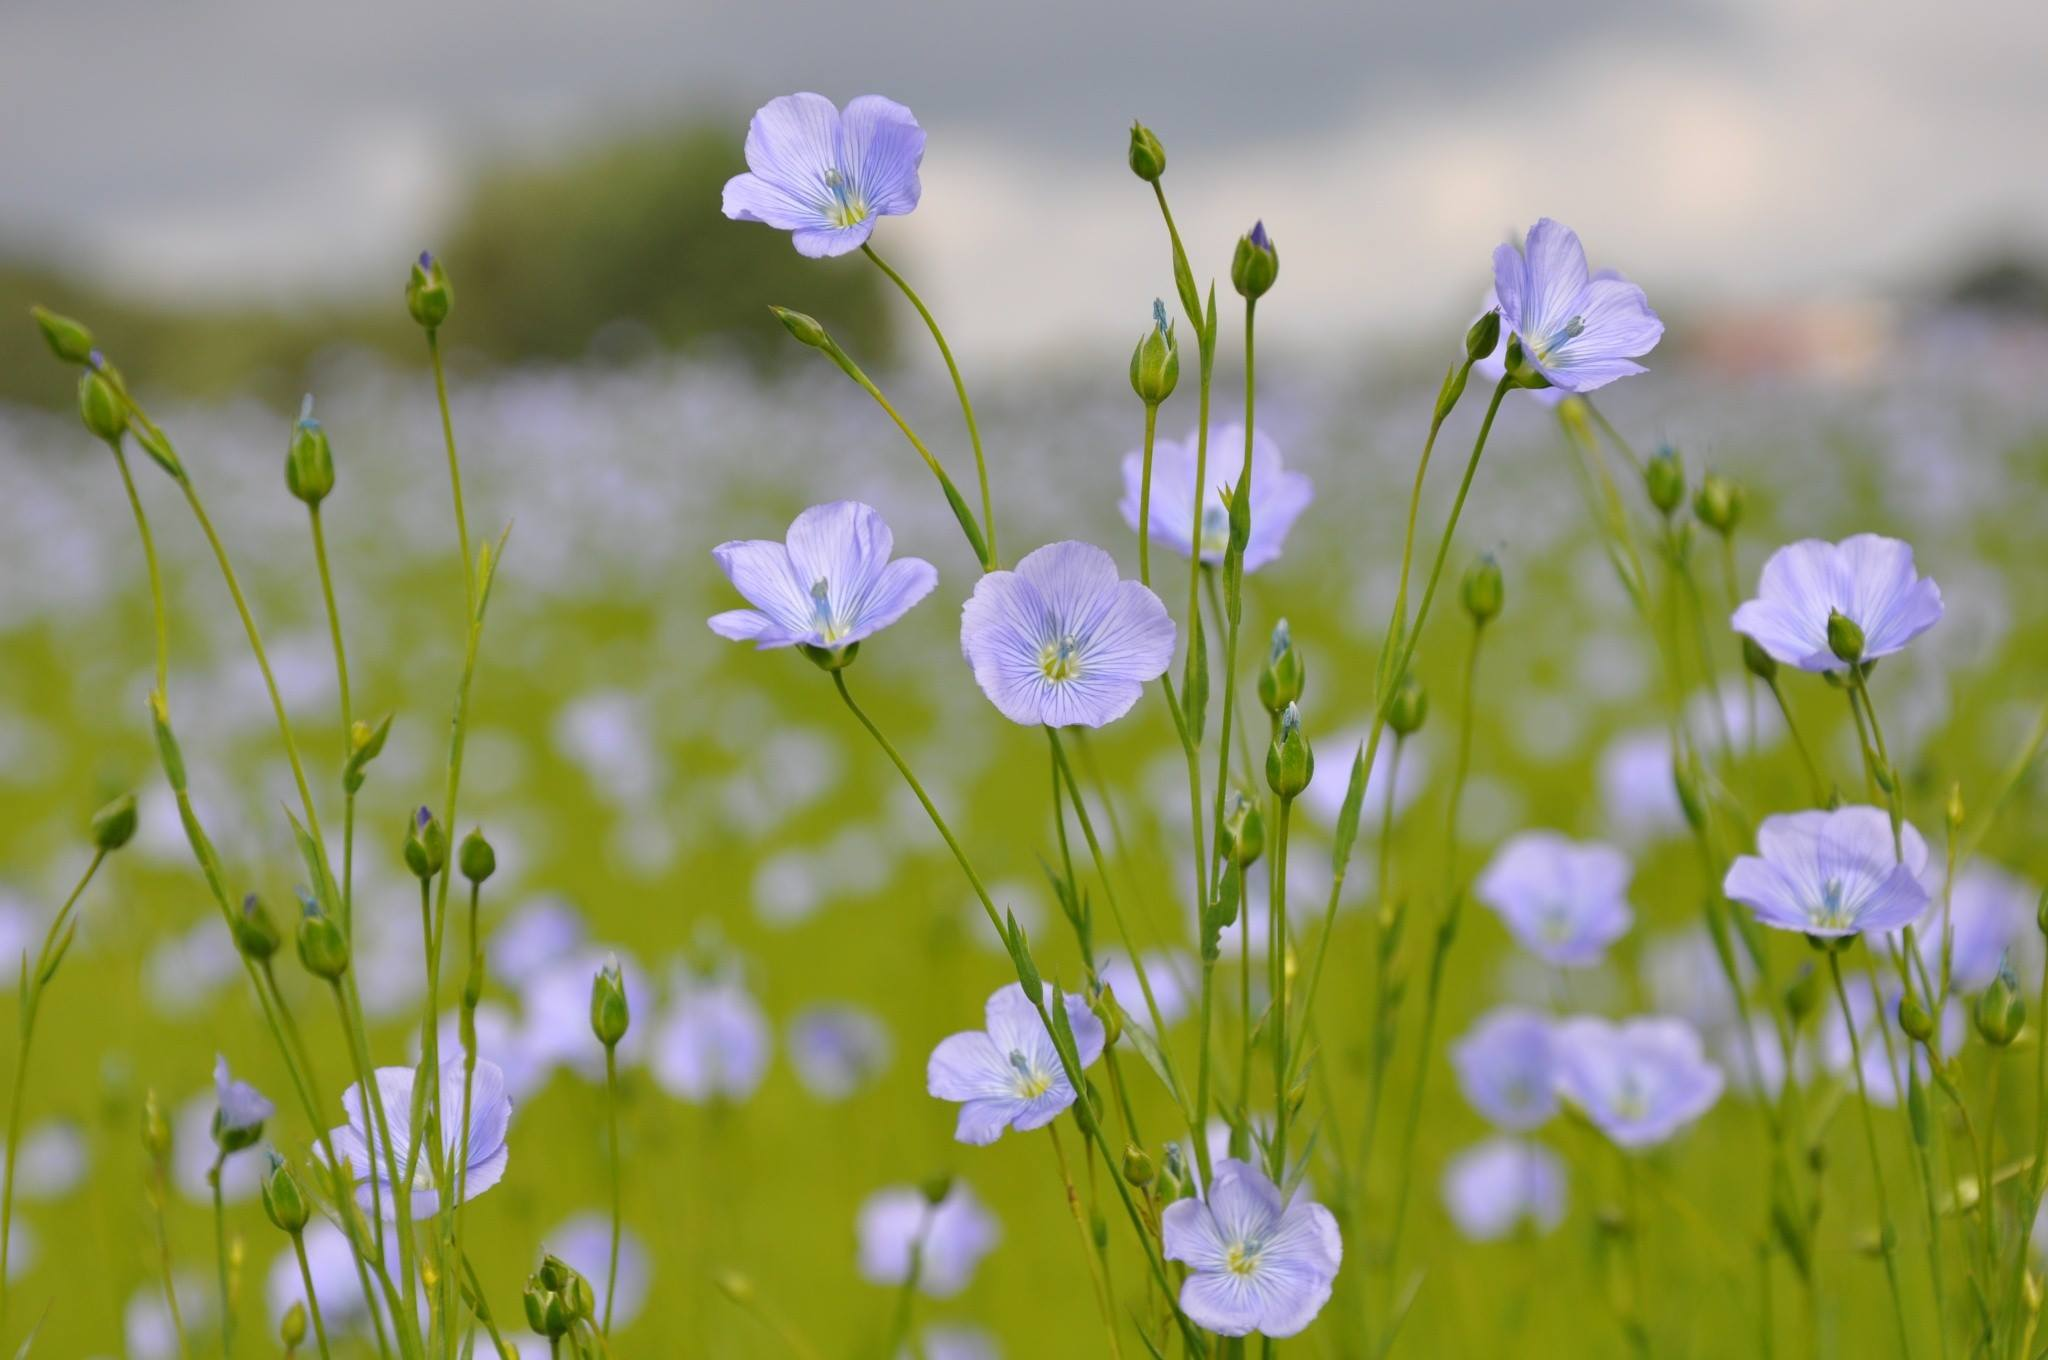 Flax grows in Northern Europe.